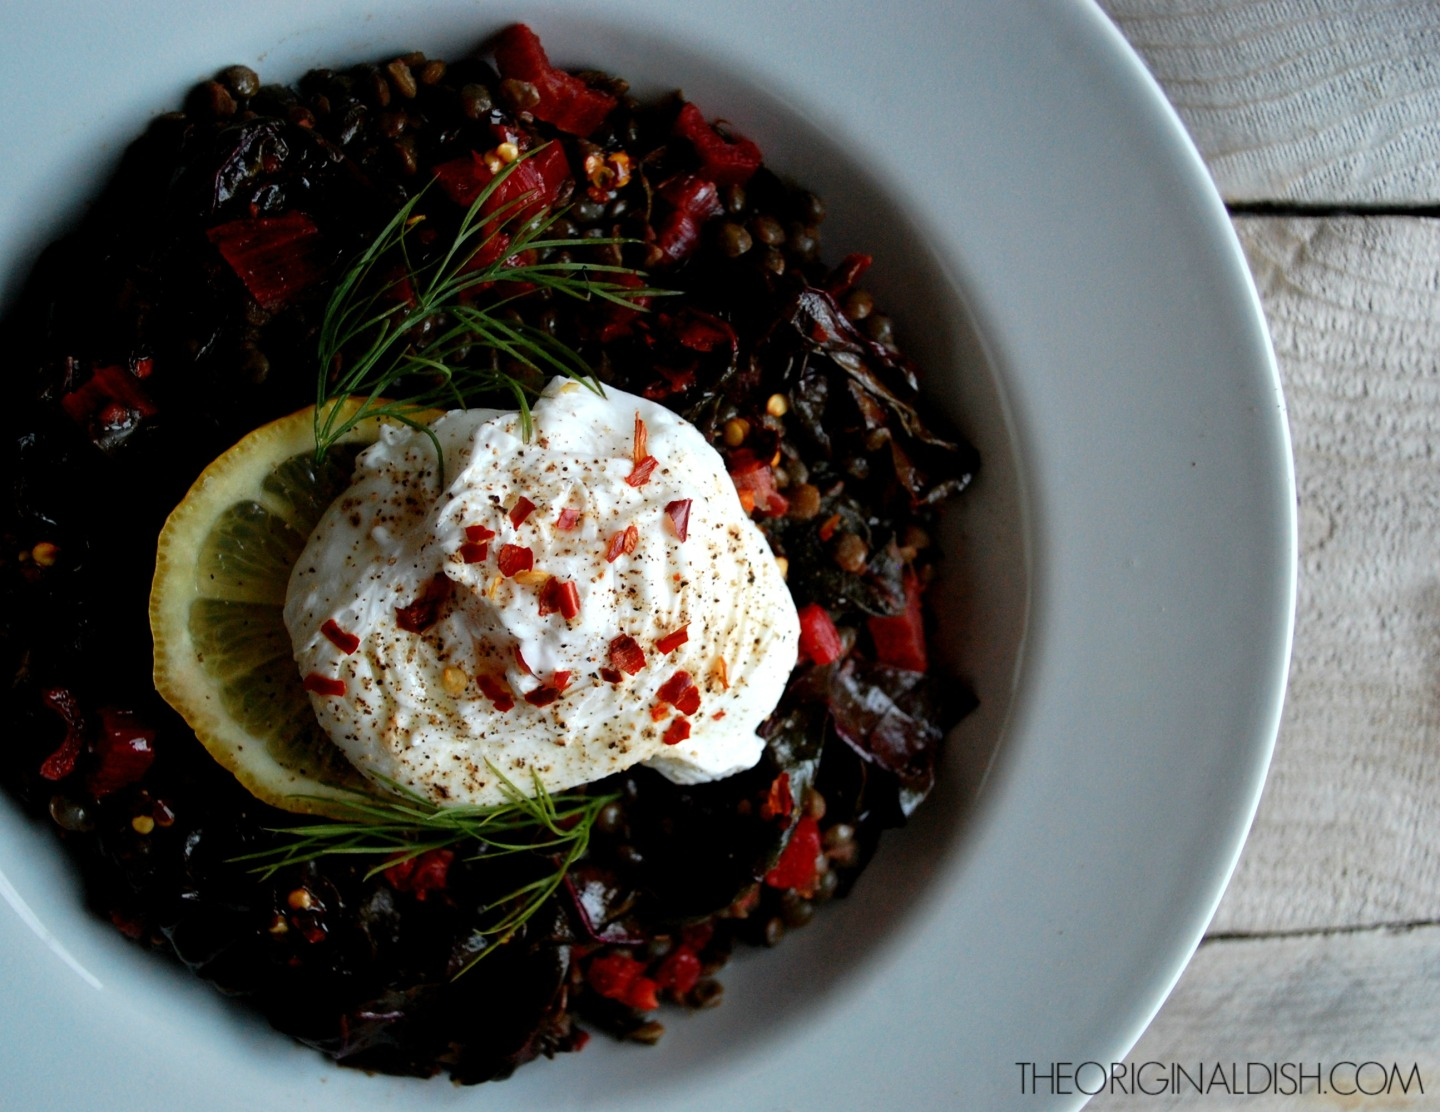 Stewed Lentils with Poached Eggs & Chili Oil